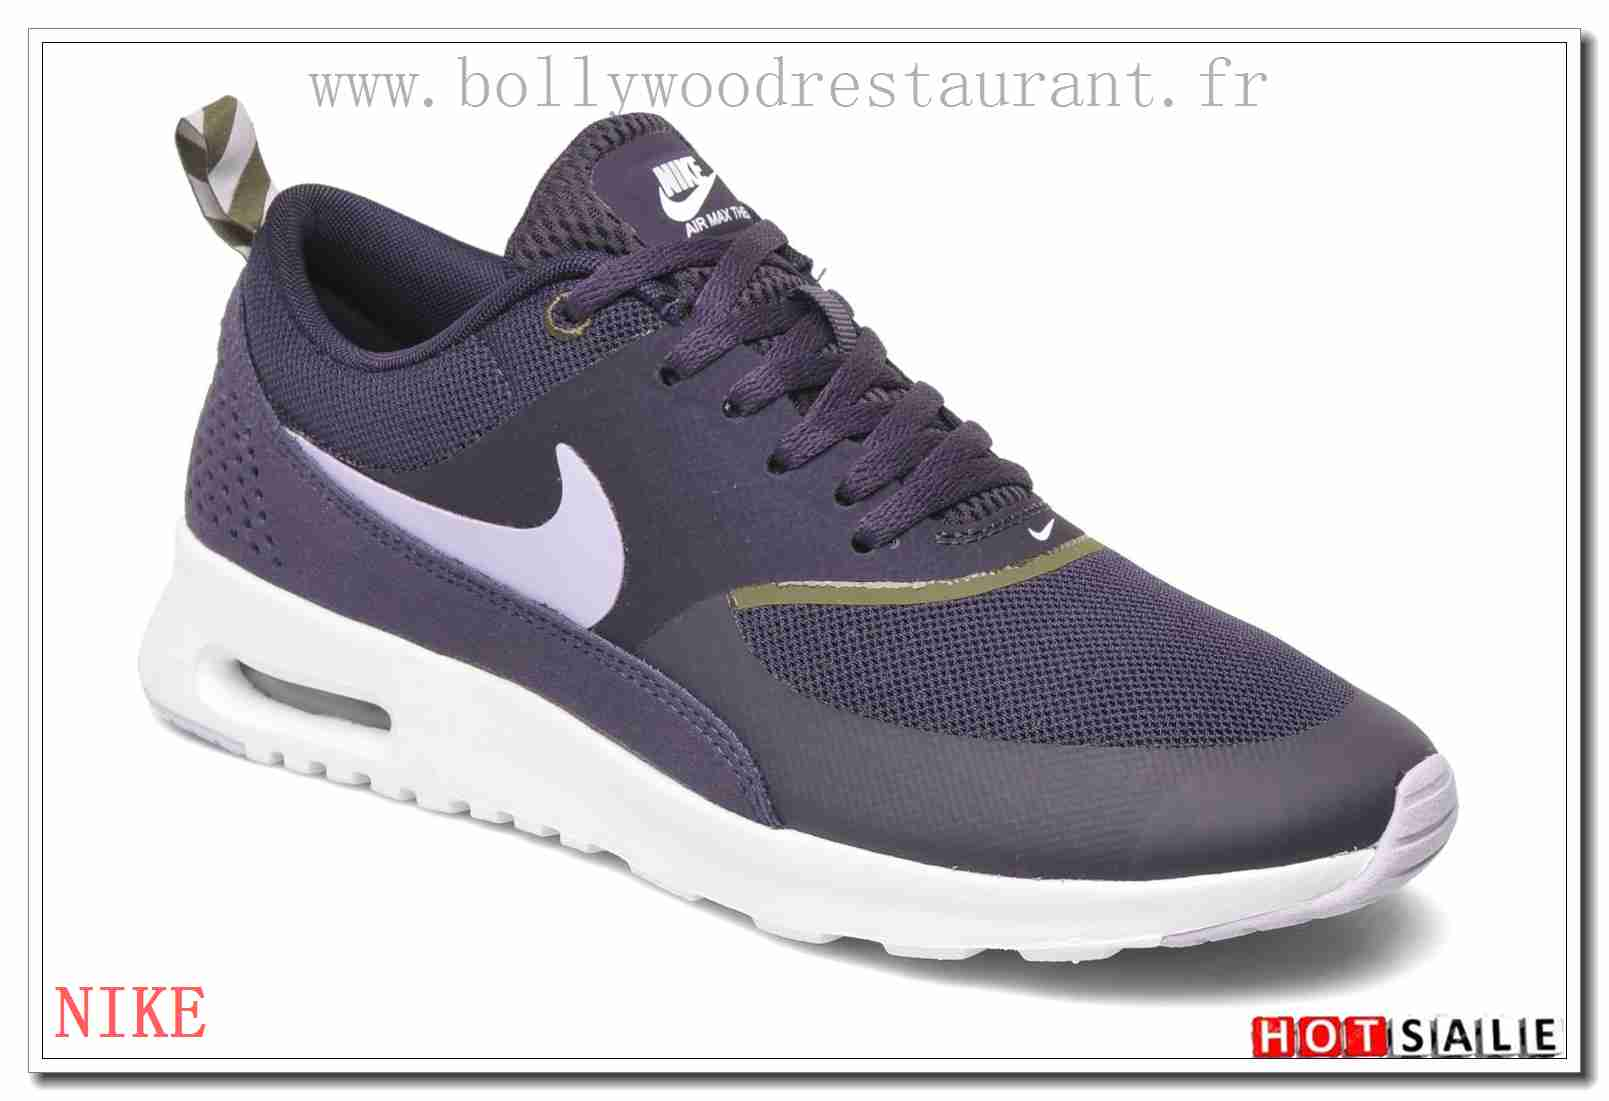 new products 3a578 08cd9 VM0189 Special Styles 2018 Nouveau style Nike Air Max Thea - Homme  Chaussures - Promotions Vente - H.K.Y. 773 - Taille   40~44